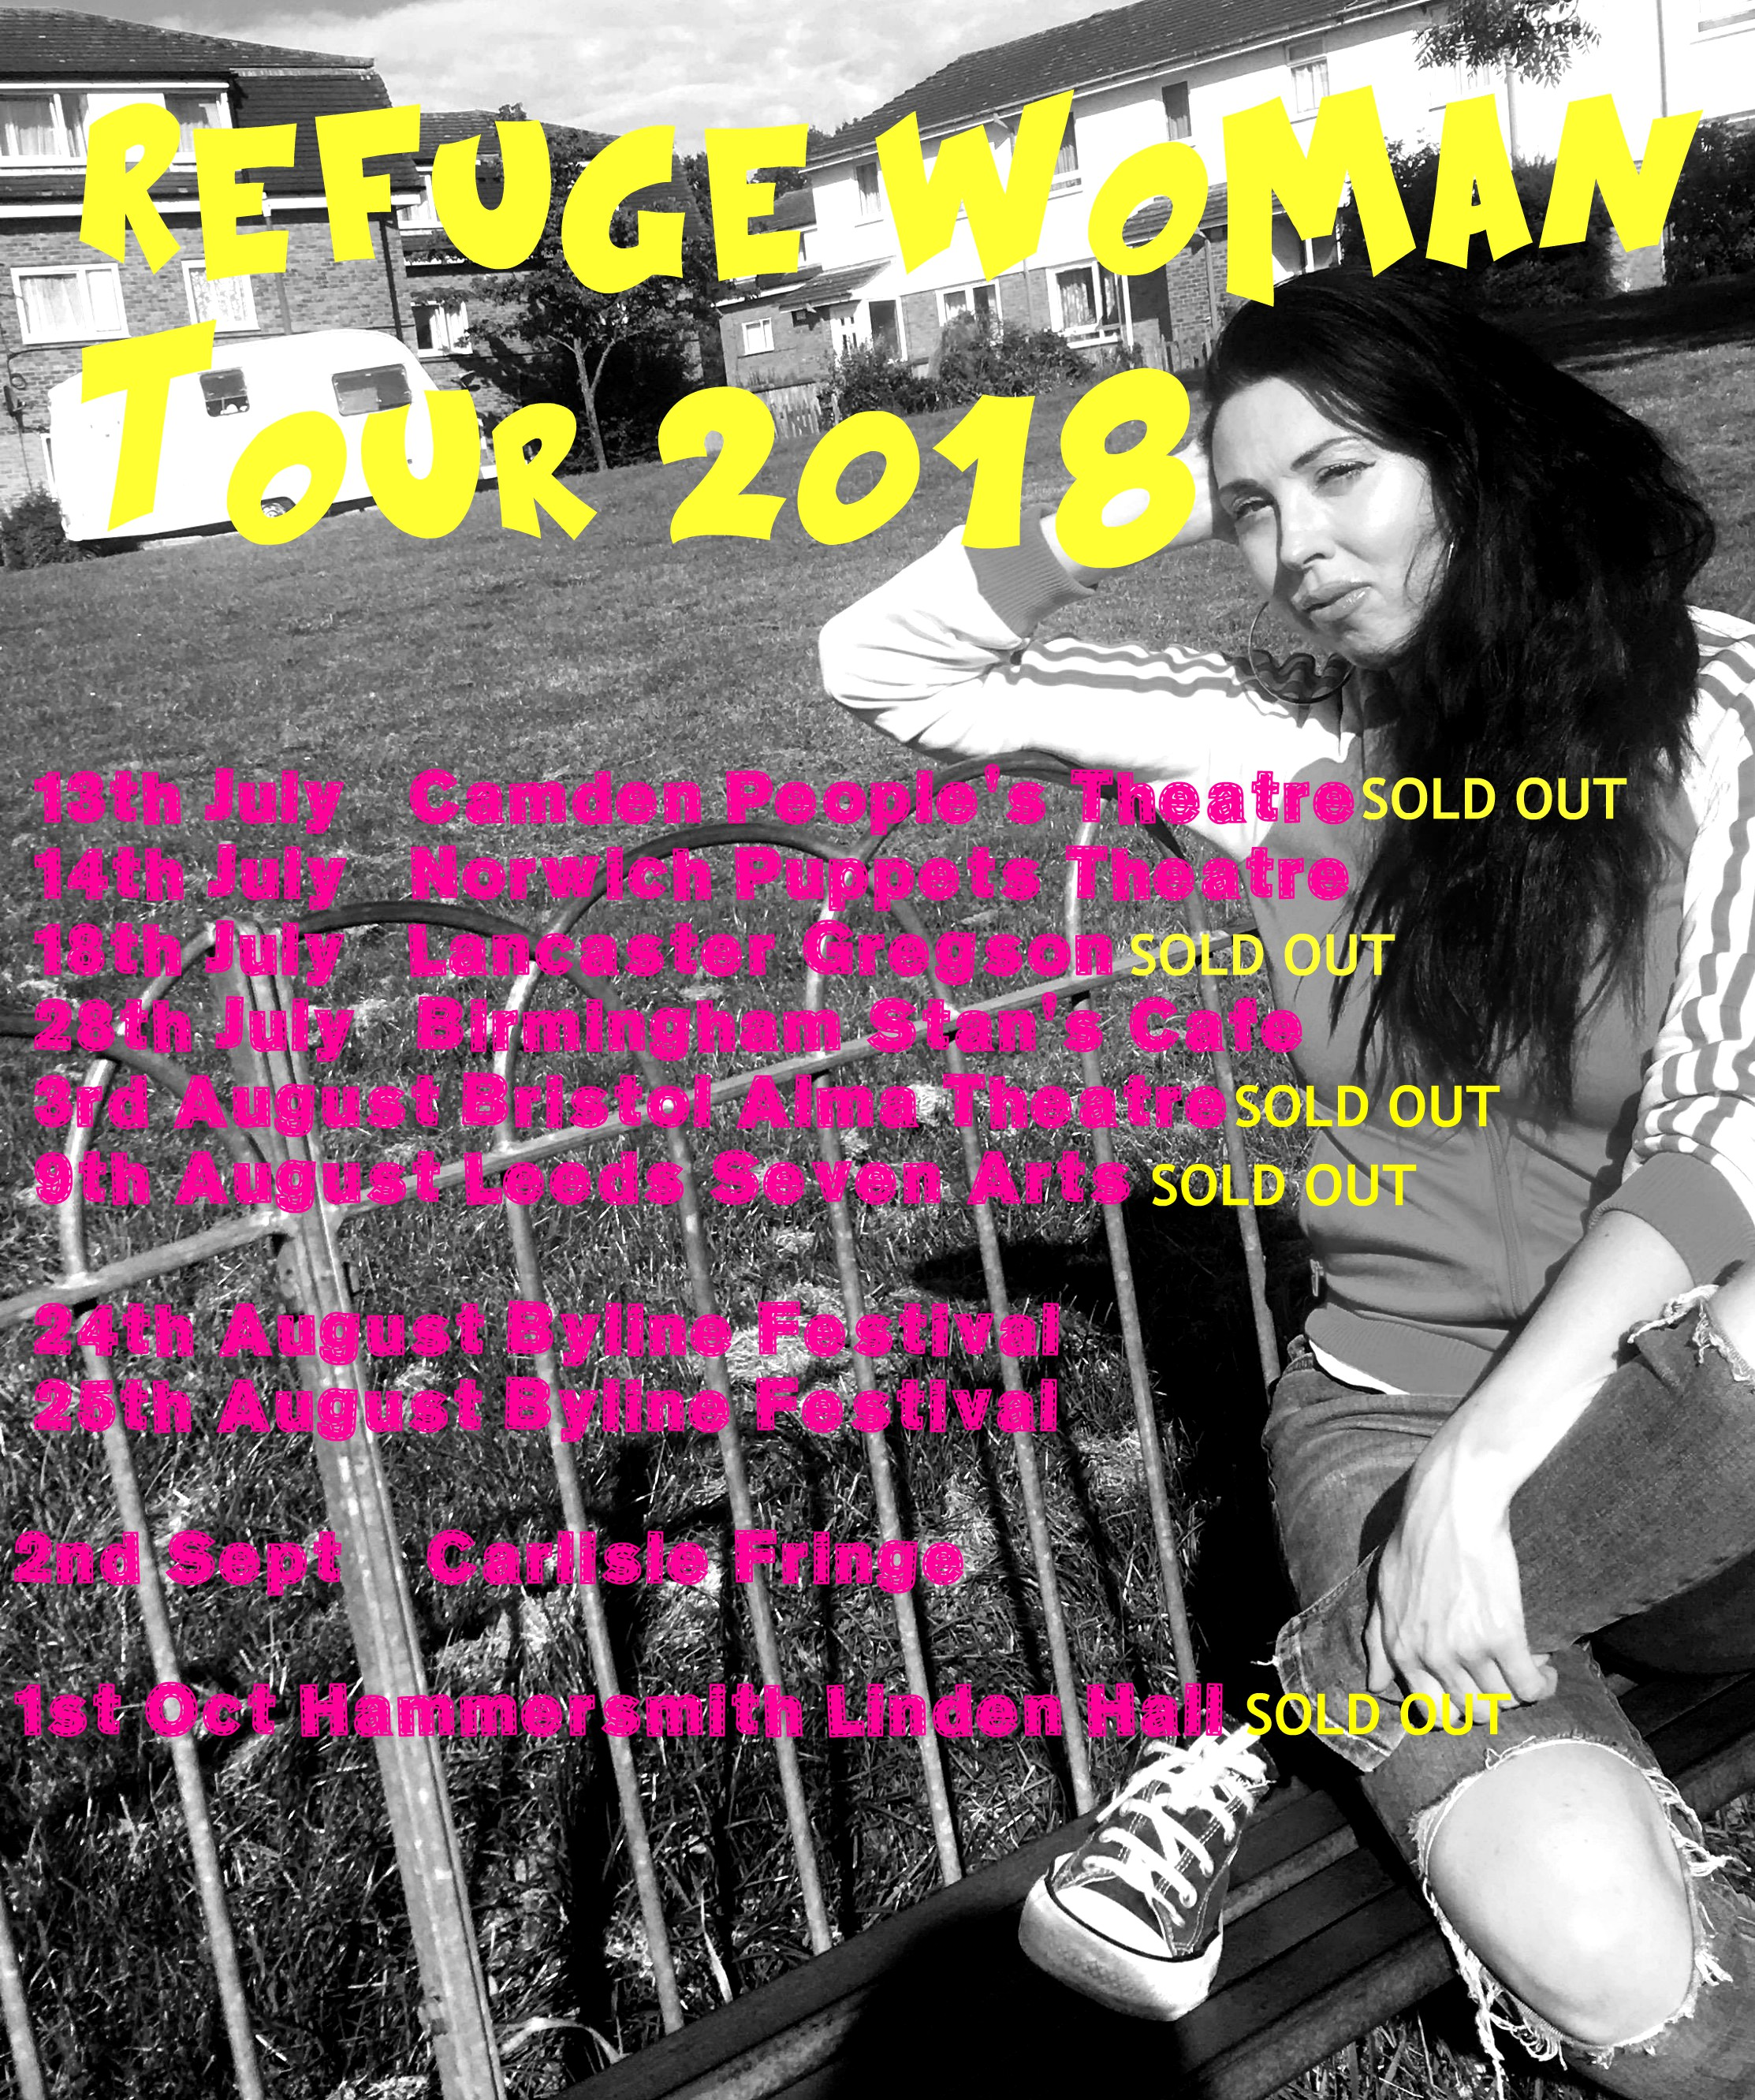 Refuge Woman work-in-progress tour 2018